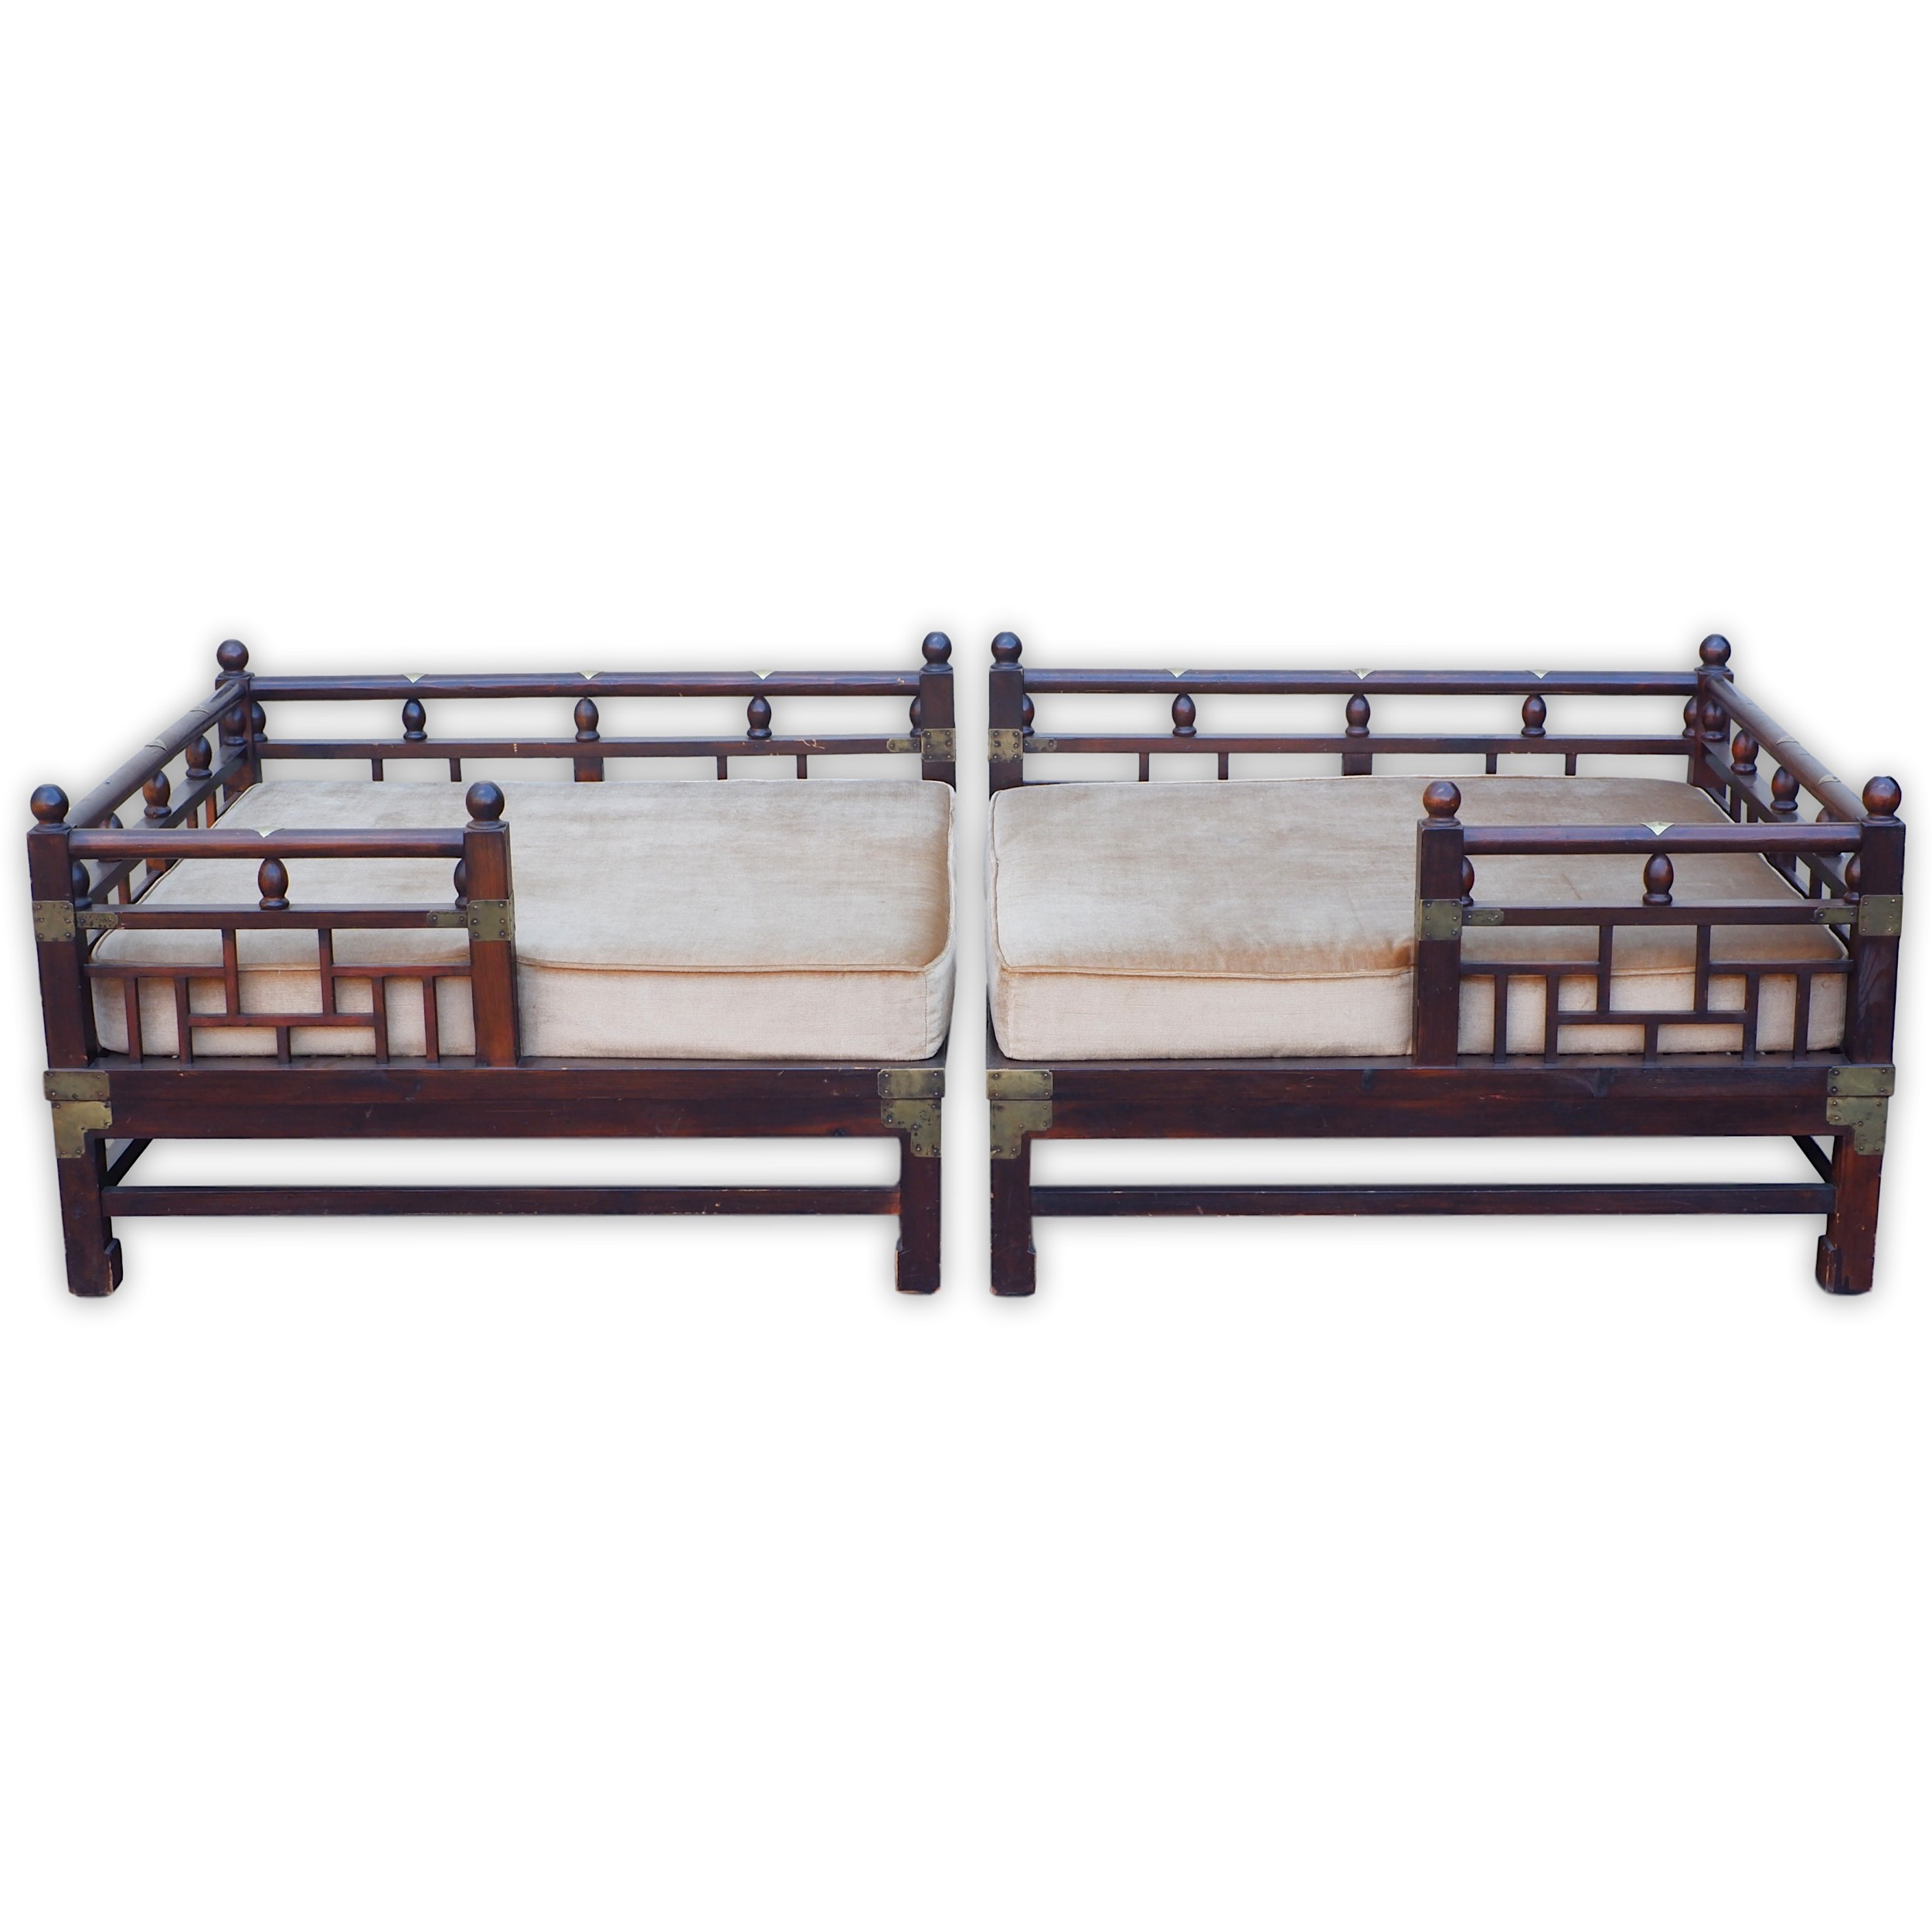 'Korean Courtesan Day Bed with Brass Embellishments'